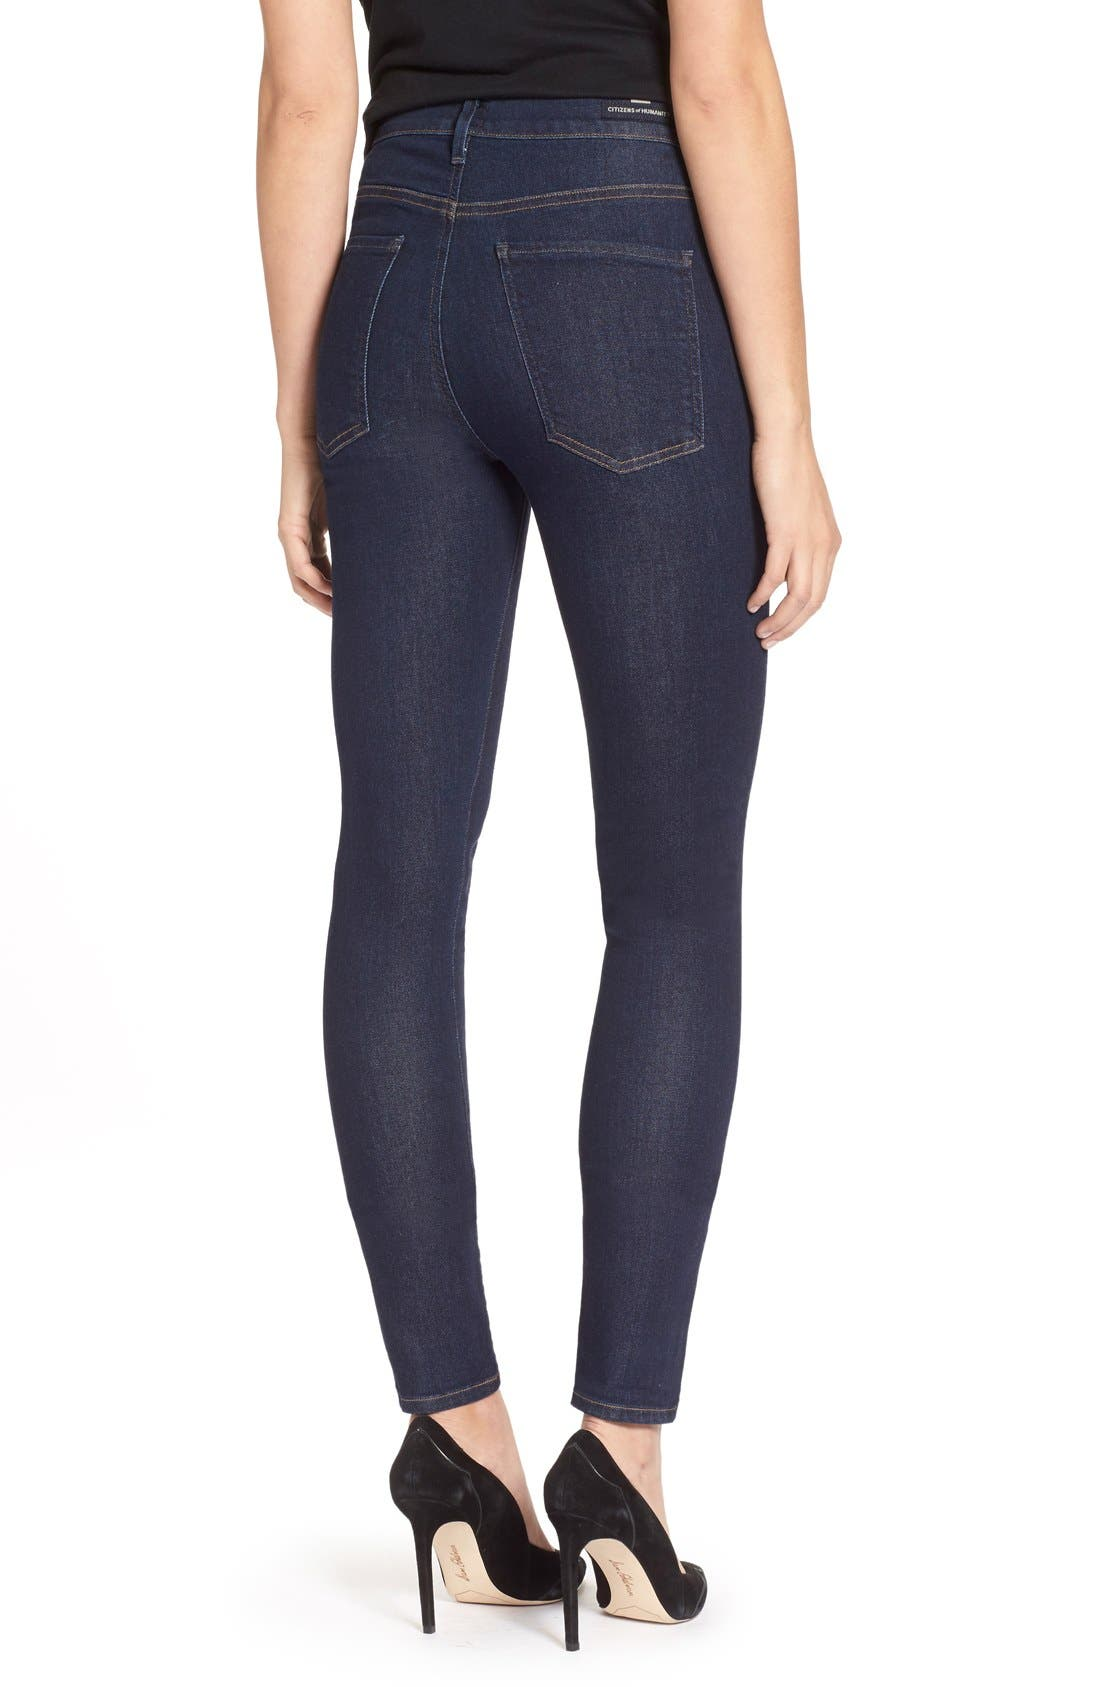 Alternate Image 2  - Citizens of Humanity 'Carlie' High Rise Skinny Jeans (Clean Blue)